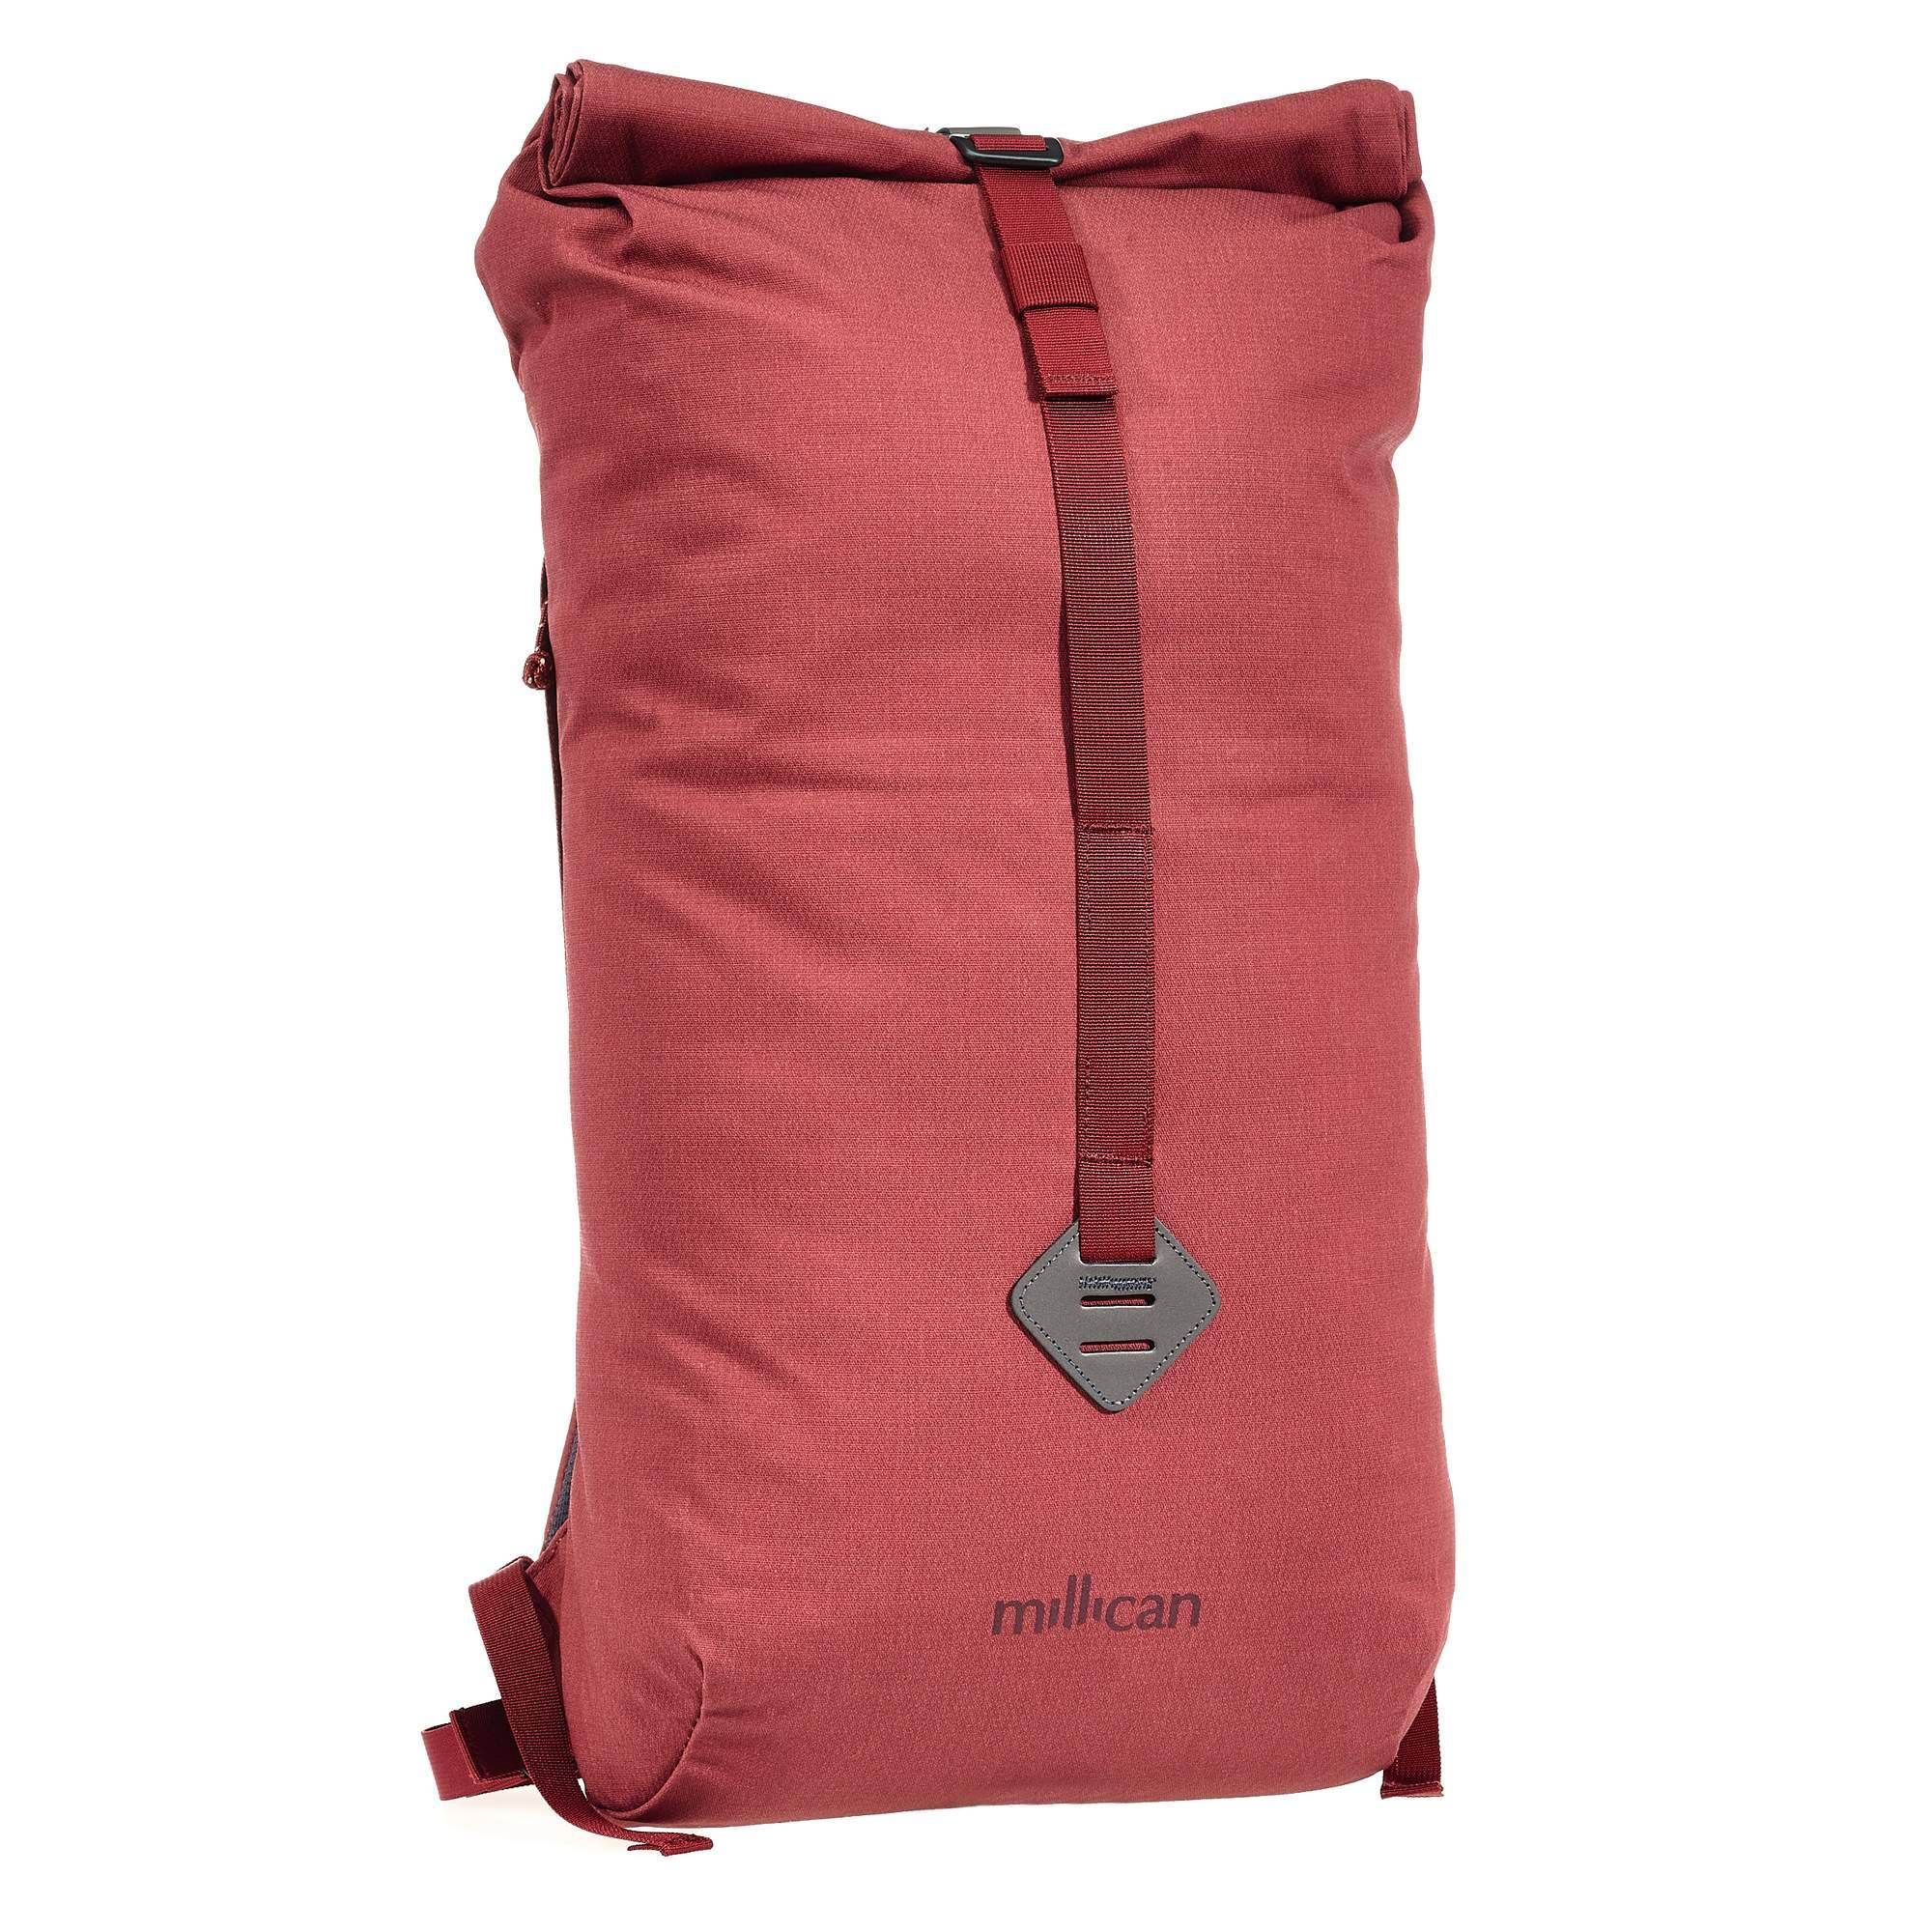 Millican Smith the Roll Pack 18L - Tagesrucksack - rotbraun / rust